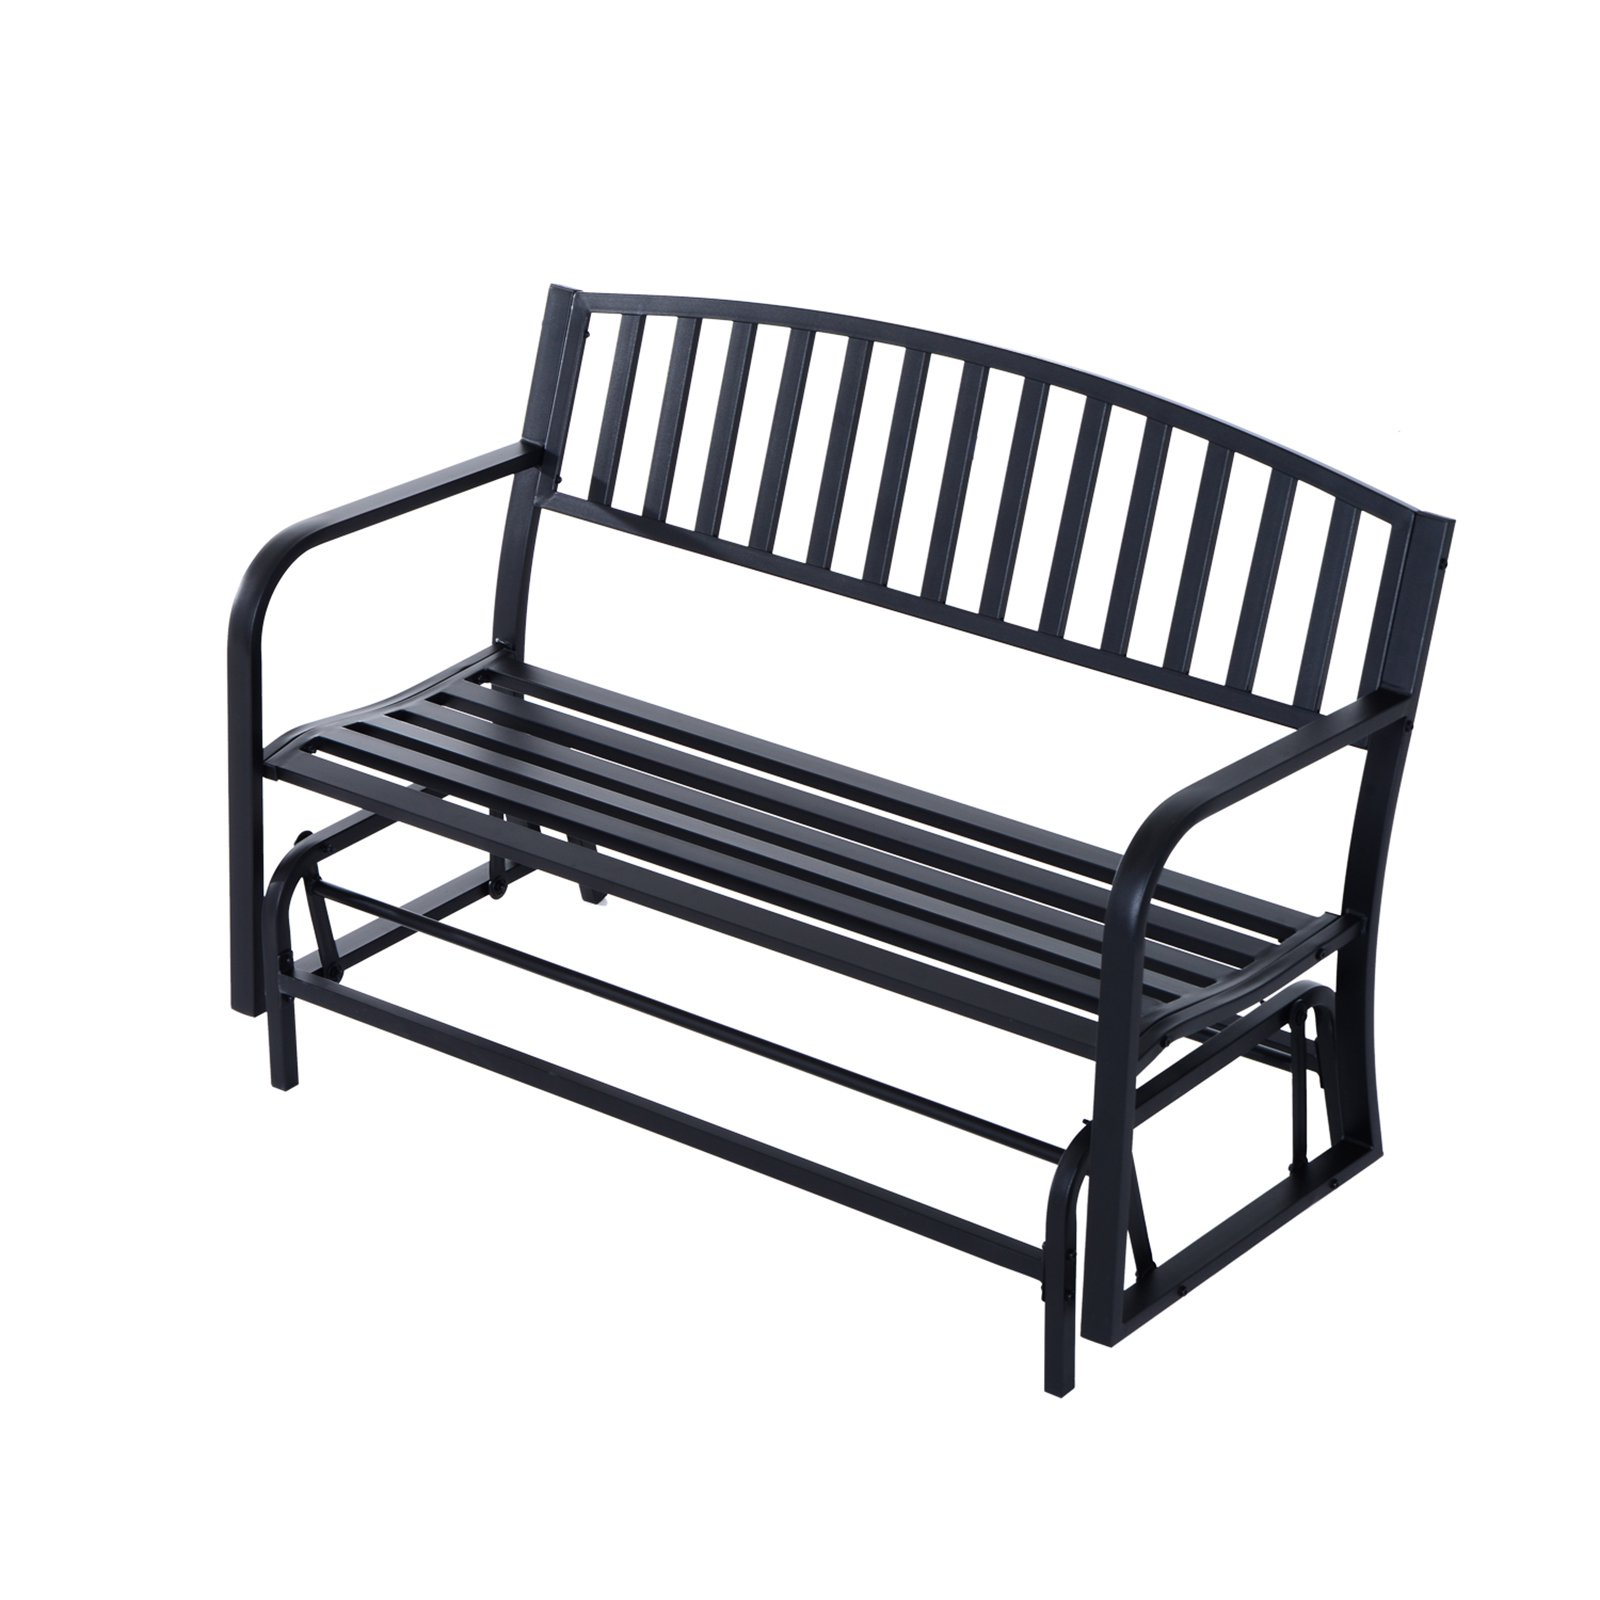 Outsunny 50 in. Steel Patio Swing Glider Bench - Black